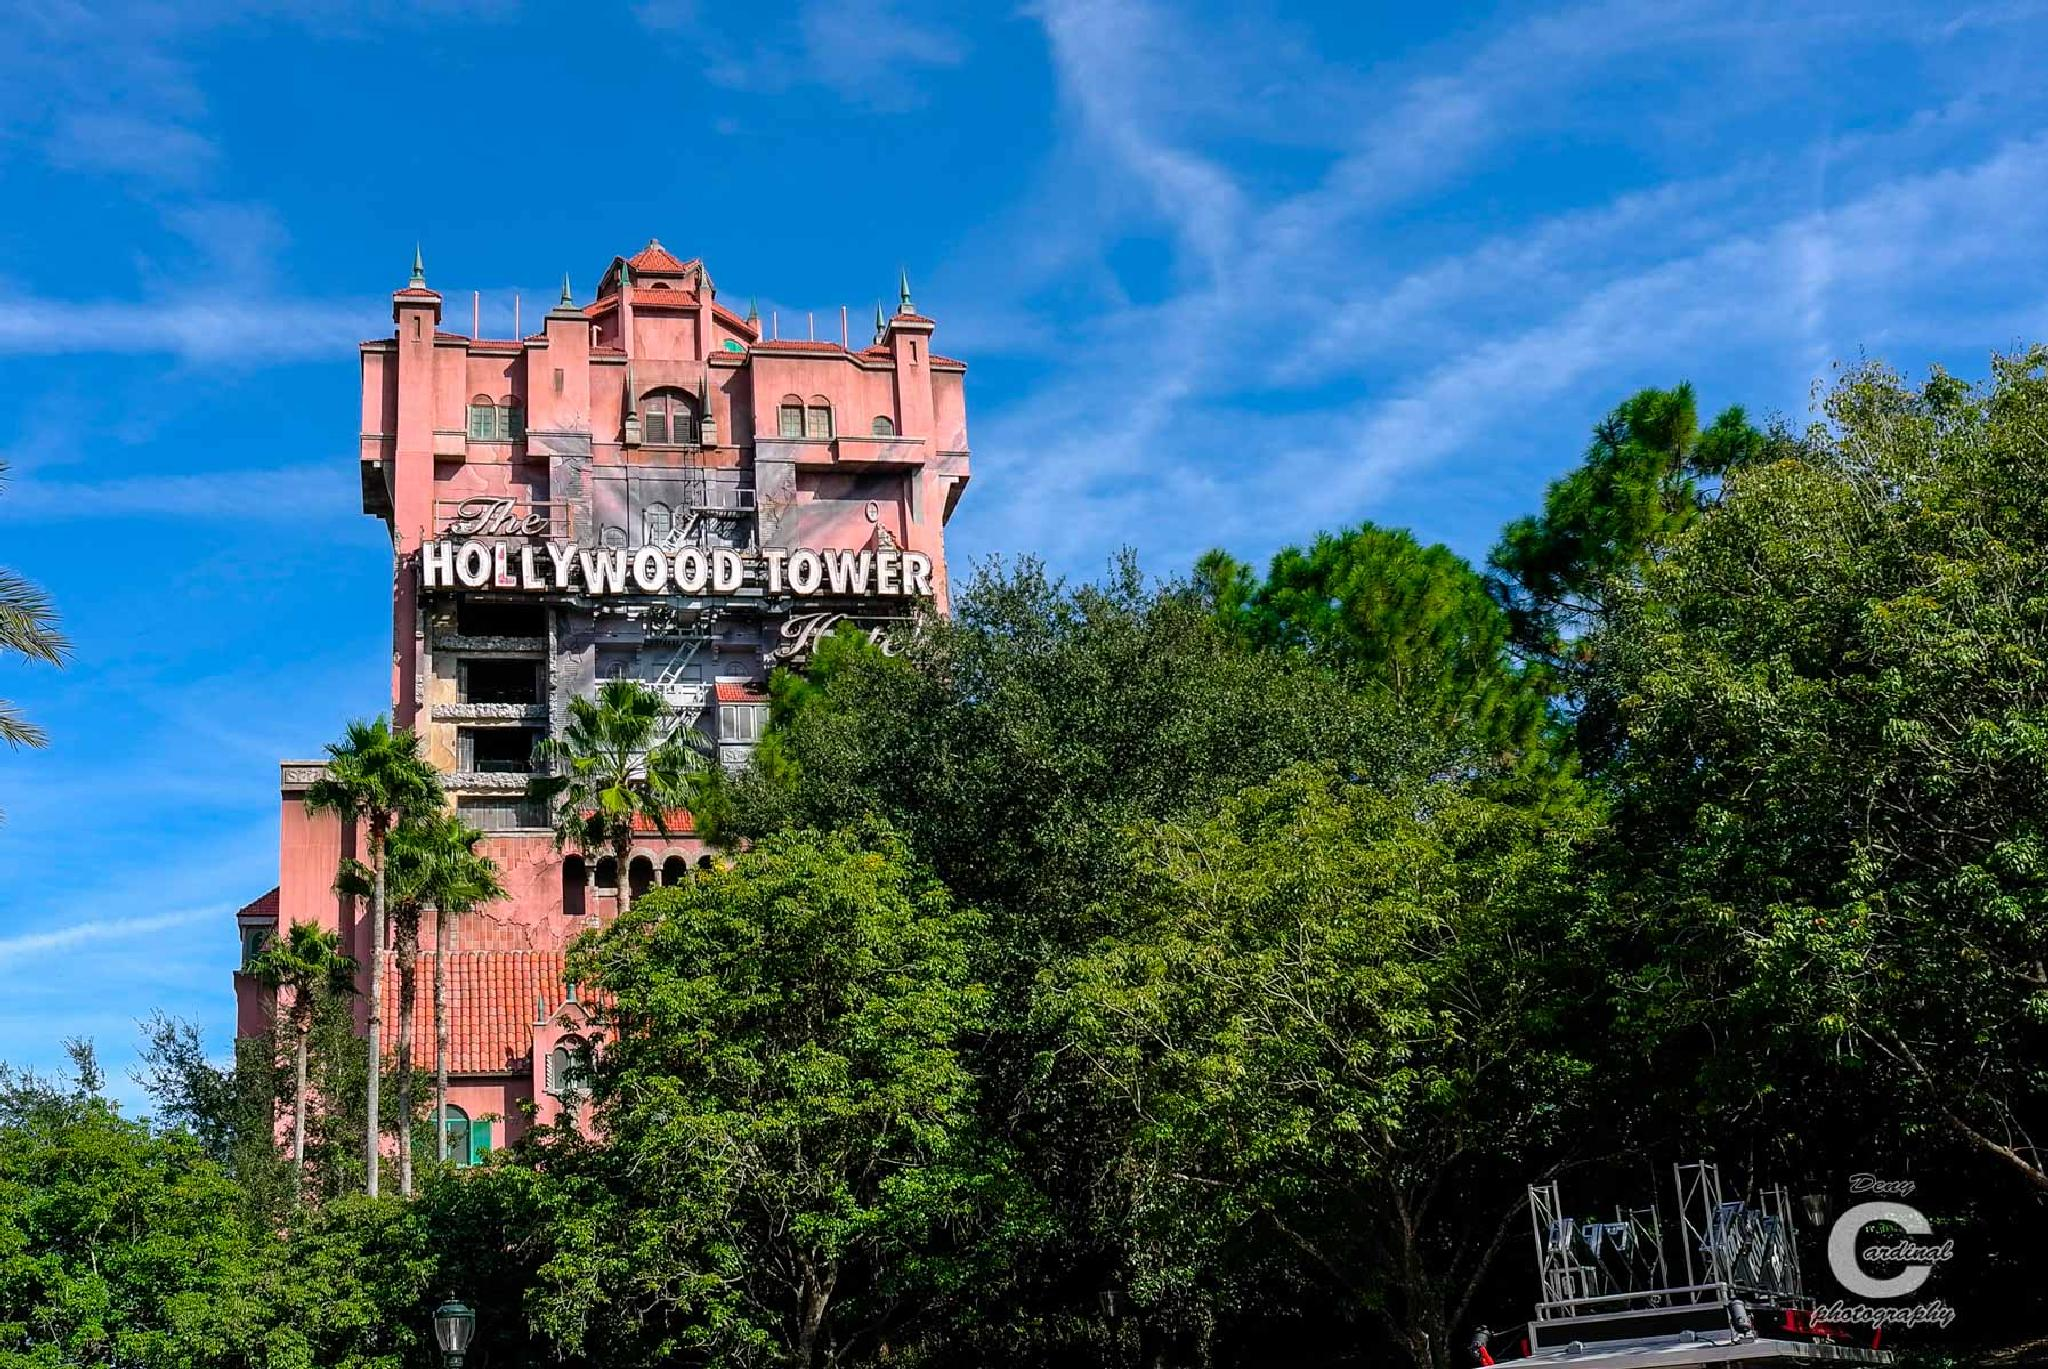 Hollywood tower by denycardinal